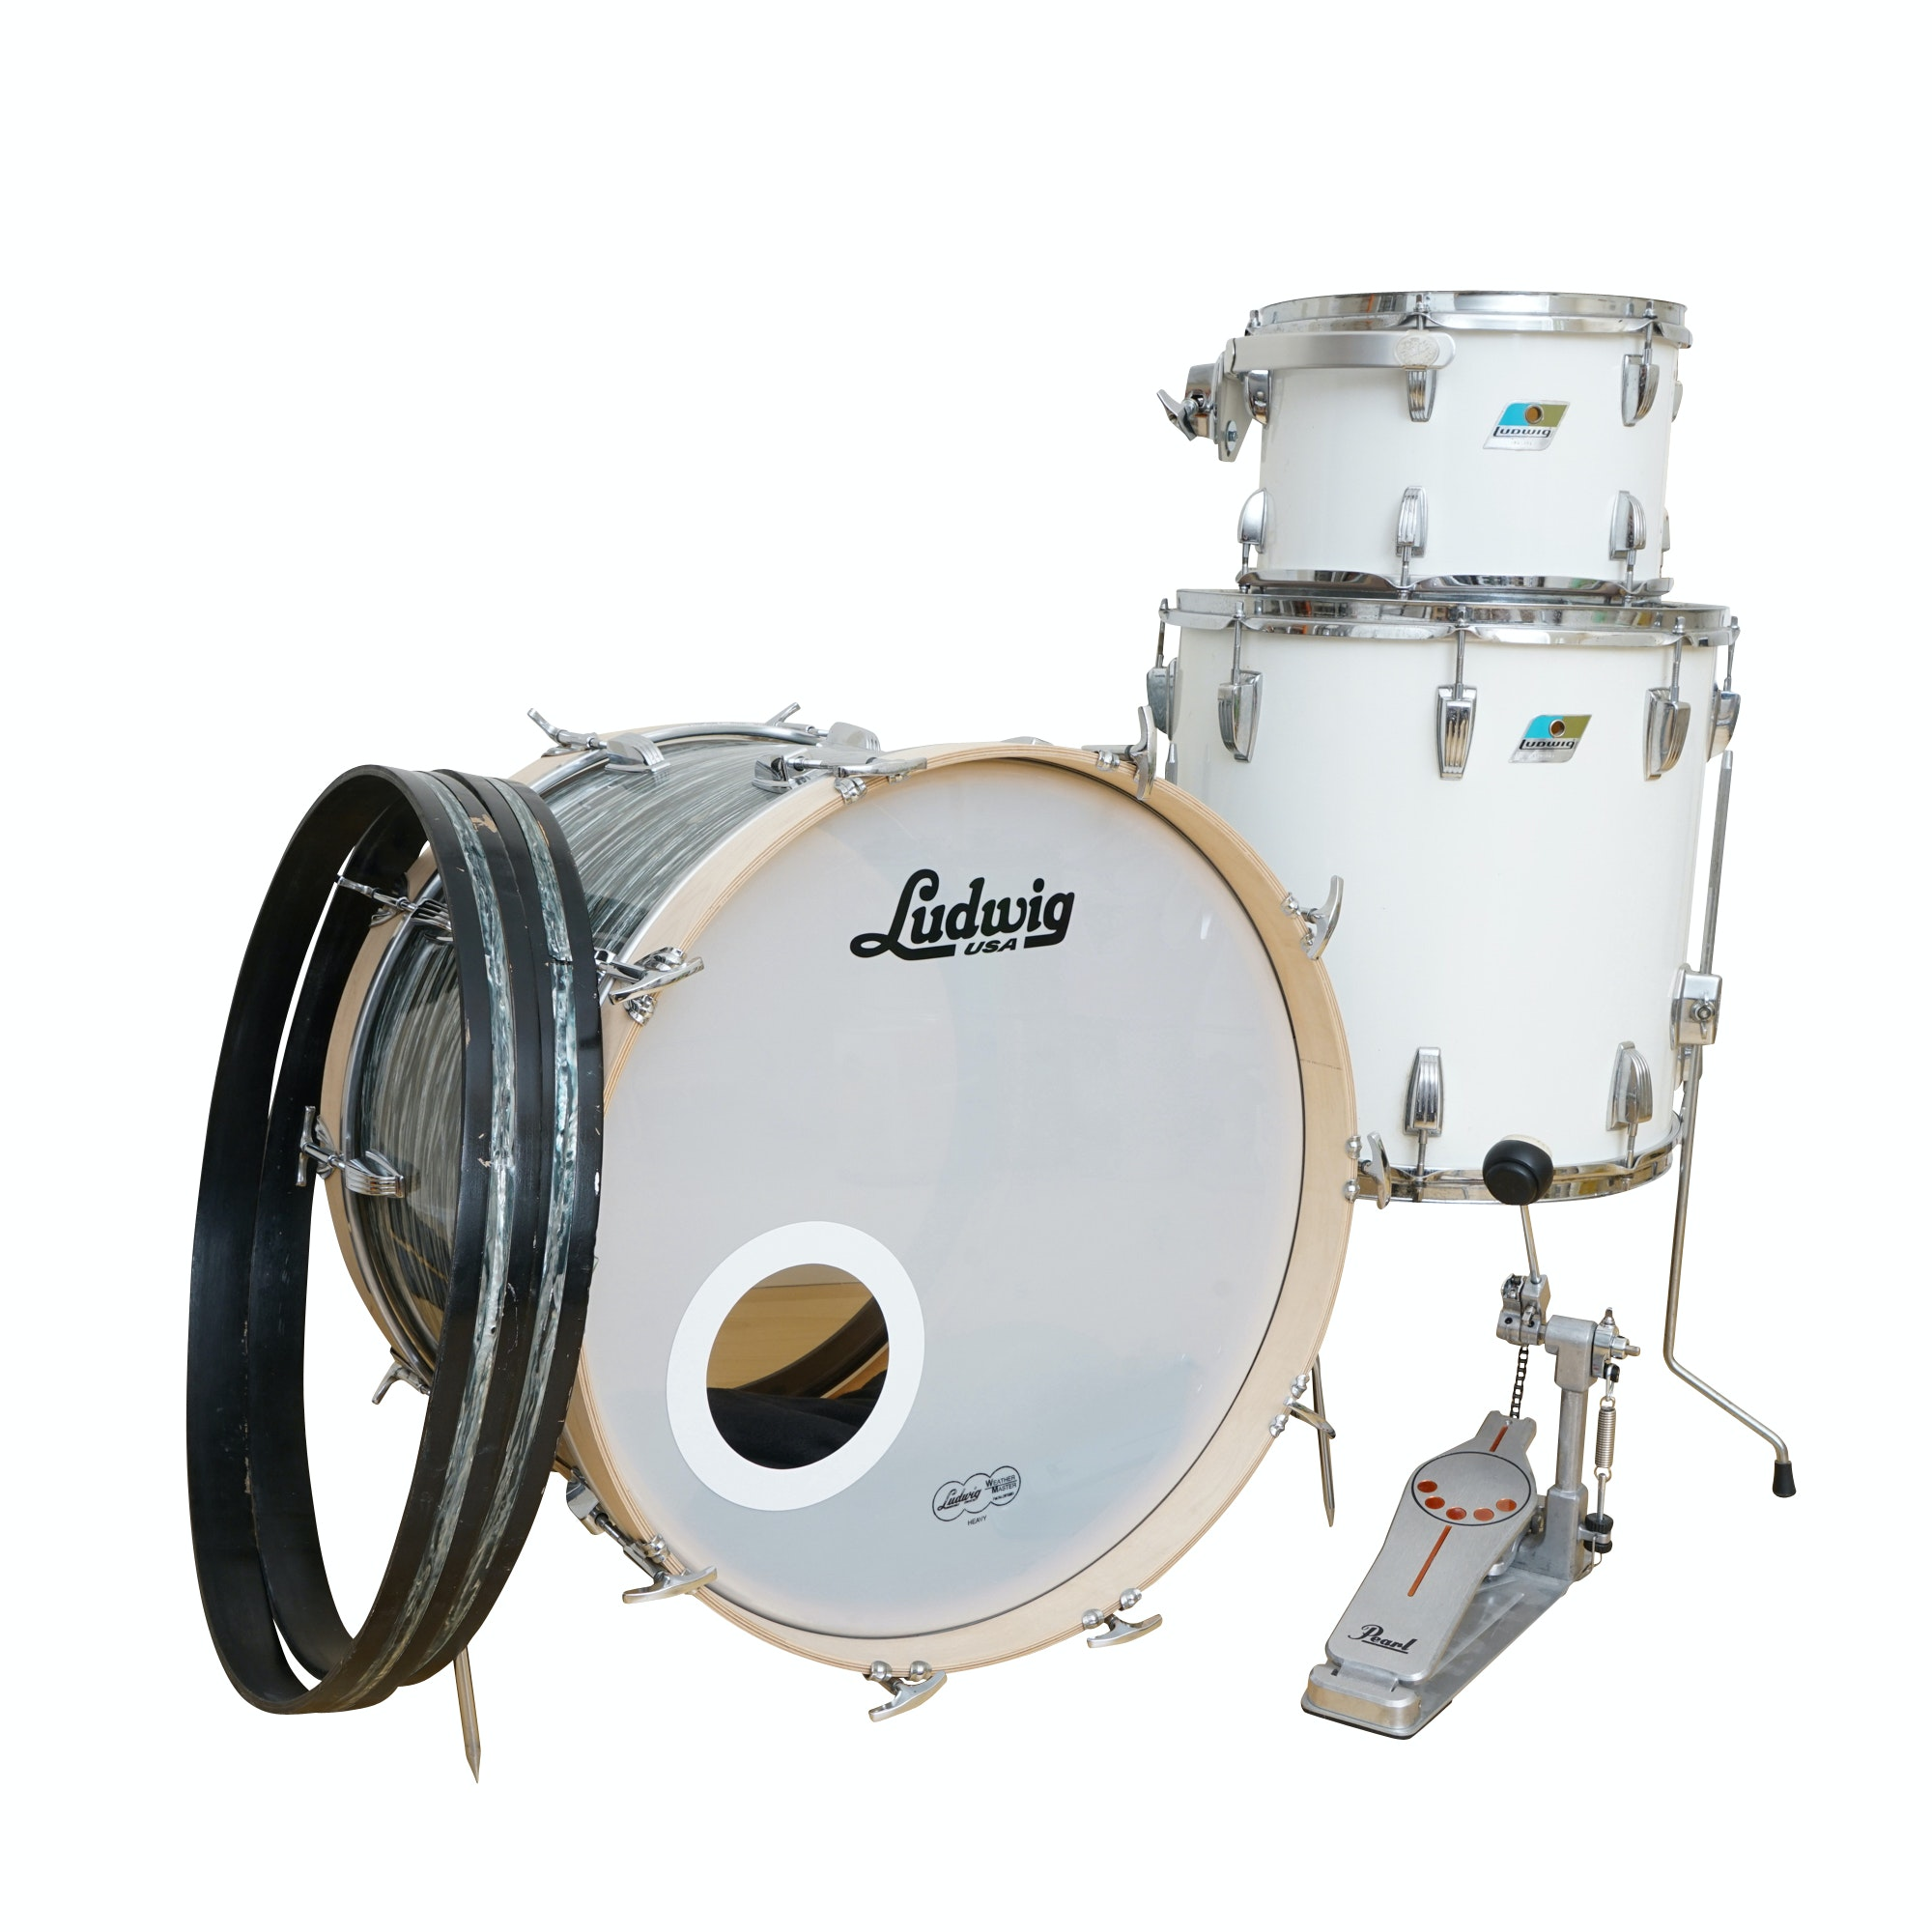 Ludwig Partial Drum Kit with Pearl Drum Pedal